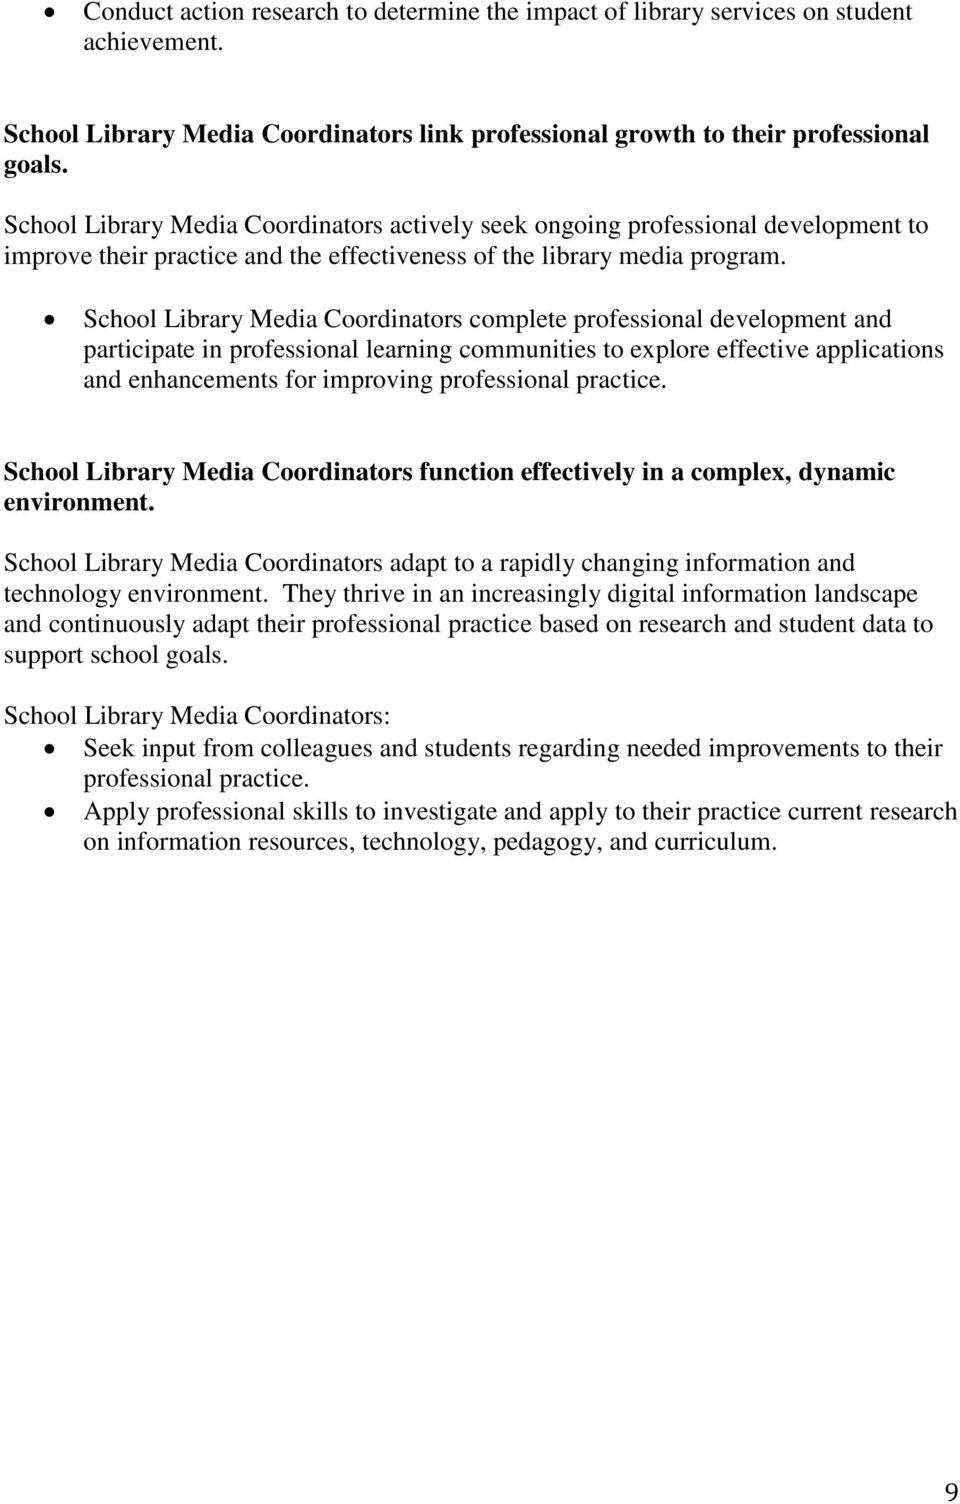 School Library Media Coordinators complete professional development and participate in professional learning communities to explore effective applications and enhancements for improving professional